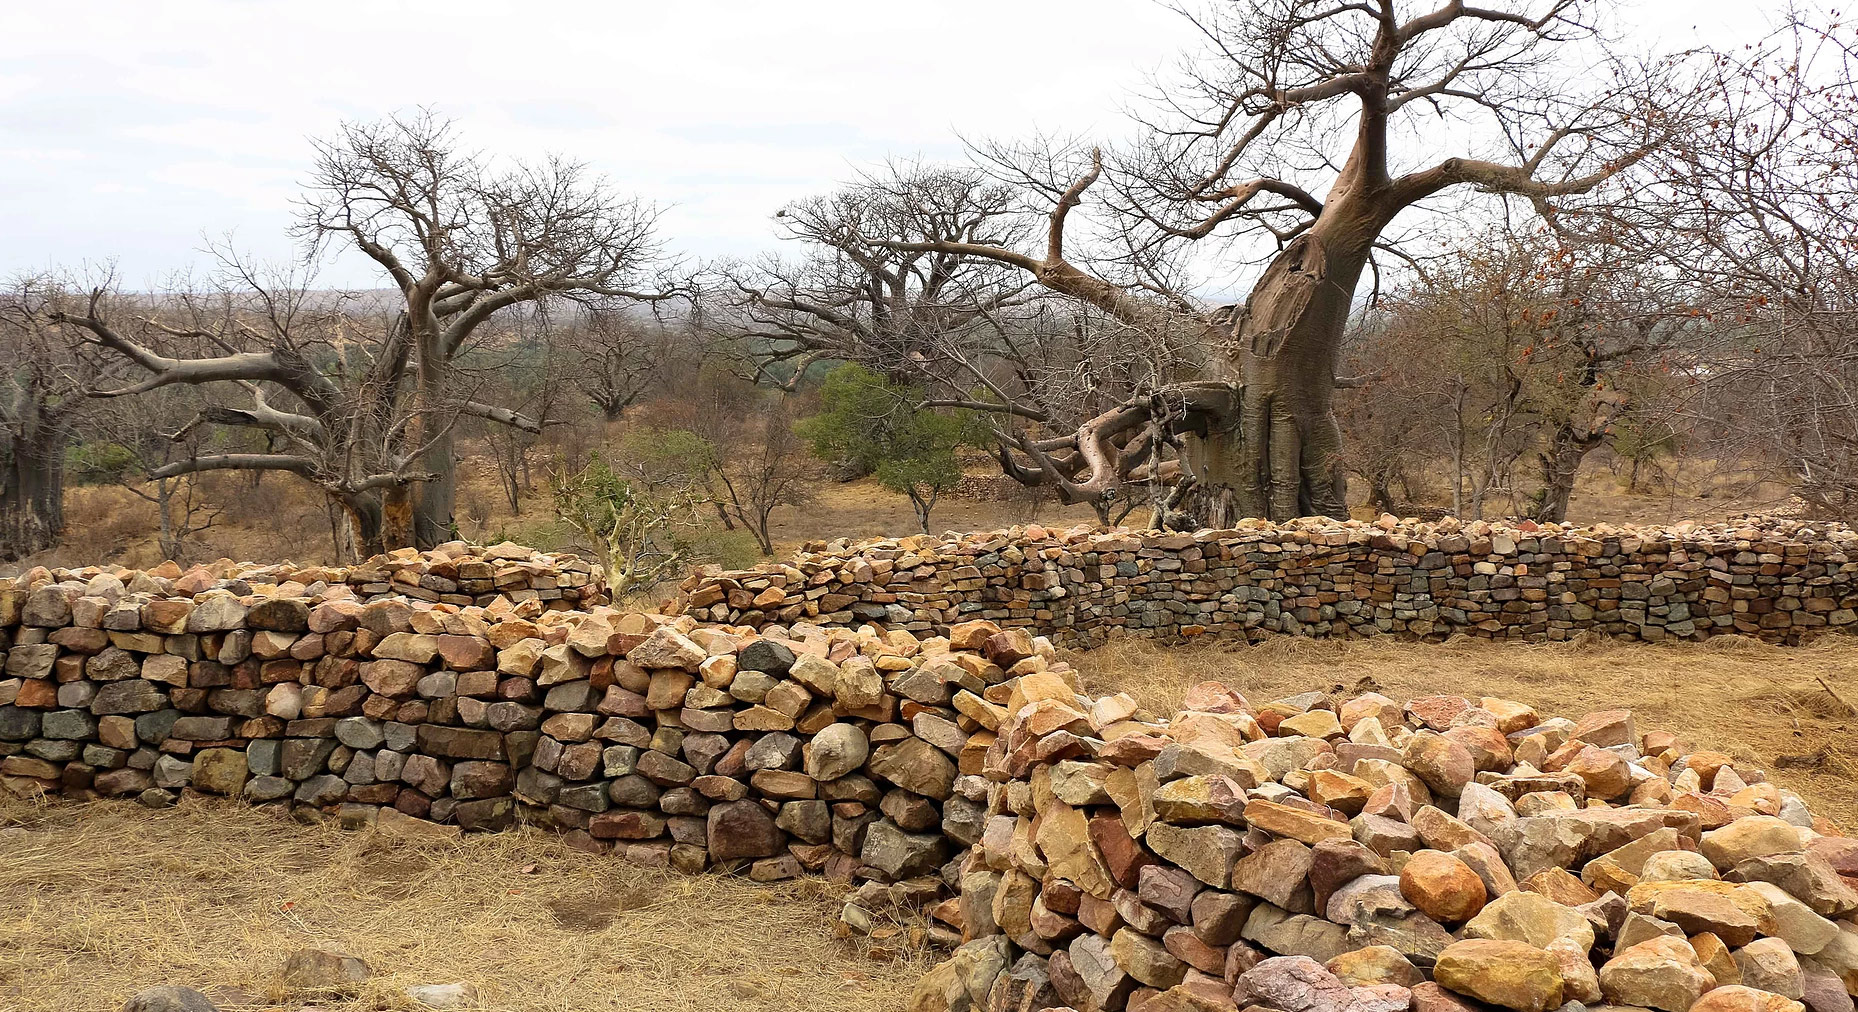 Thulamela ruins in Kruger National Park